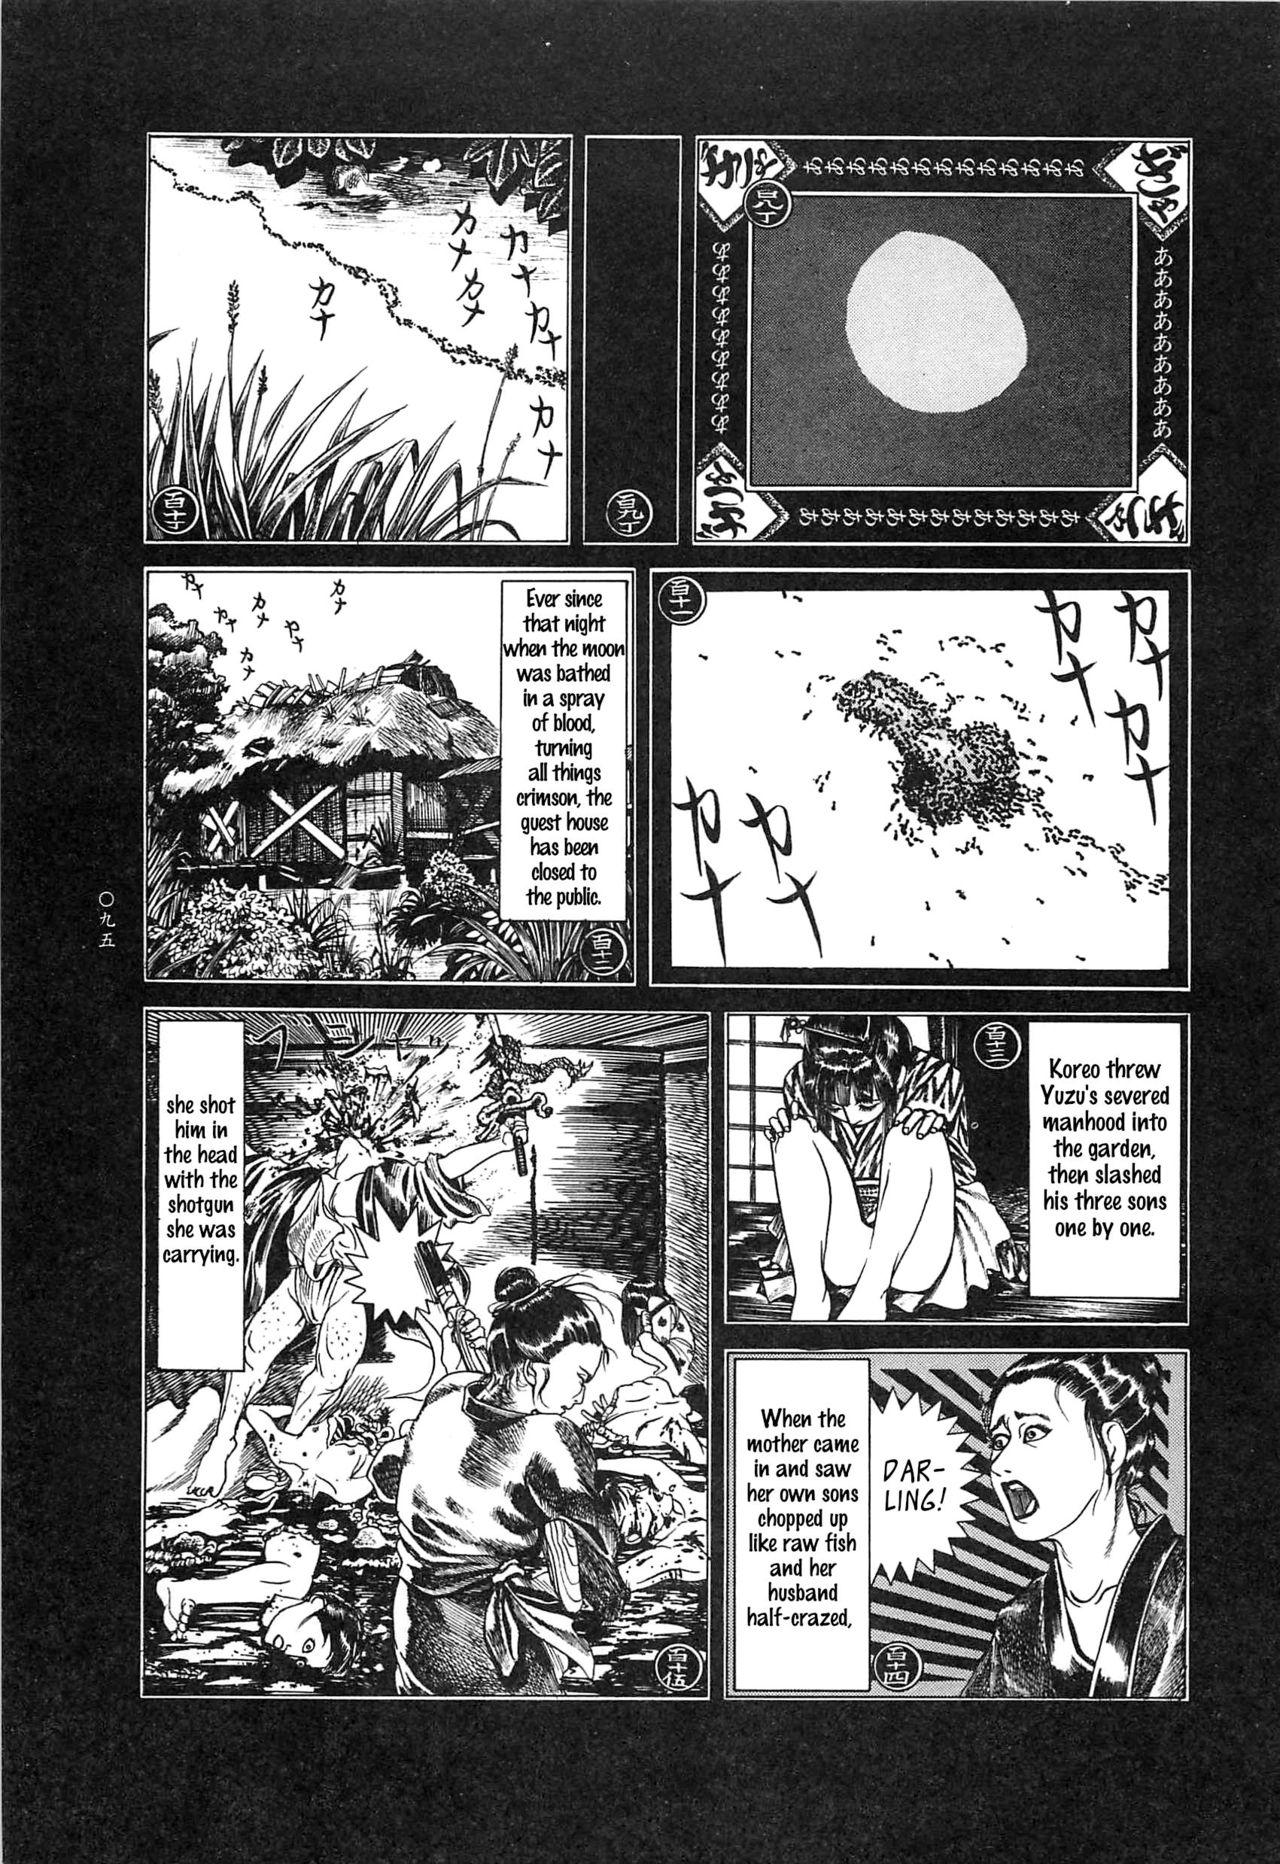 Moon-Eating Insects 96